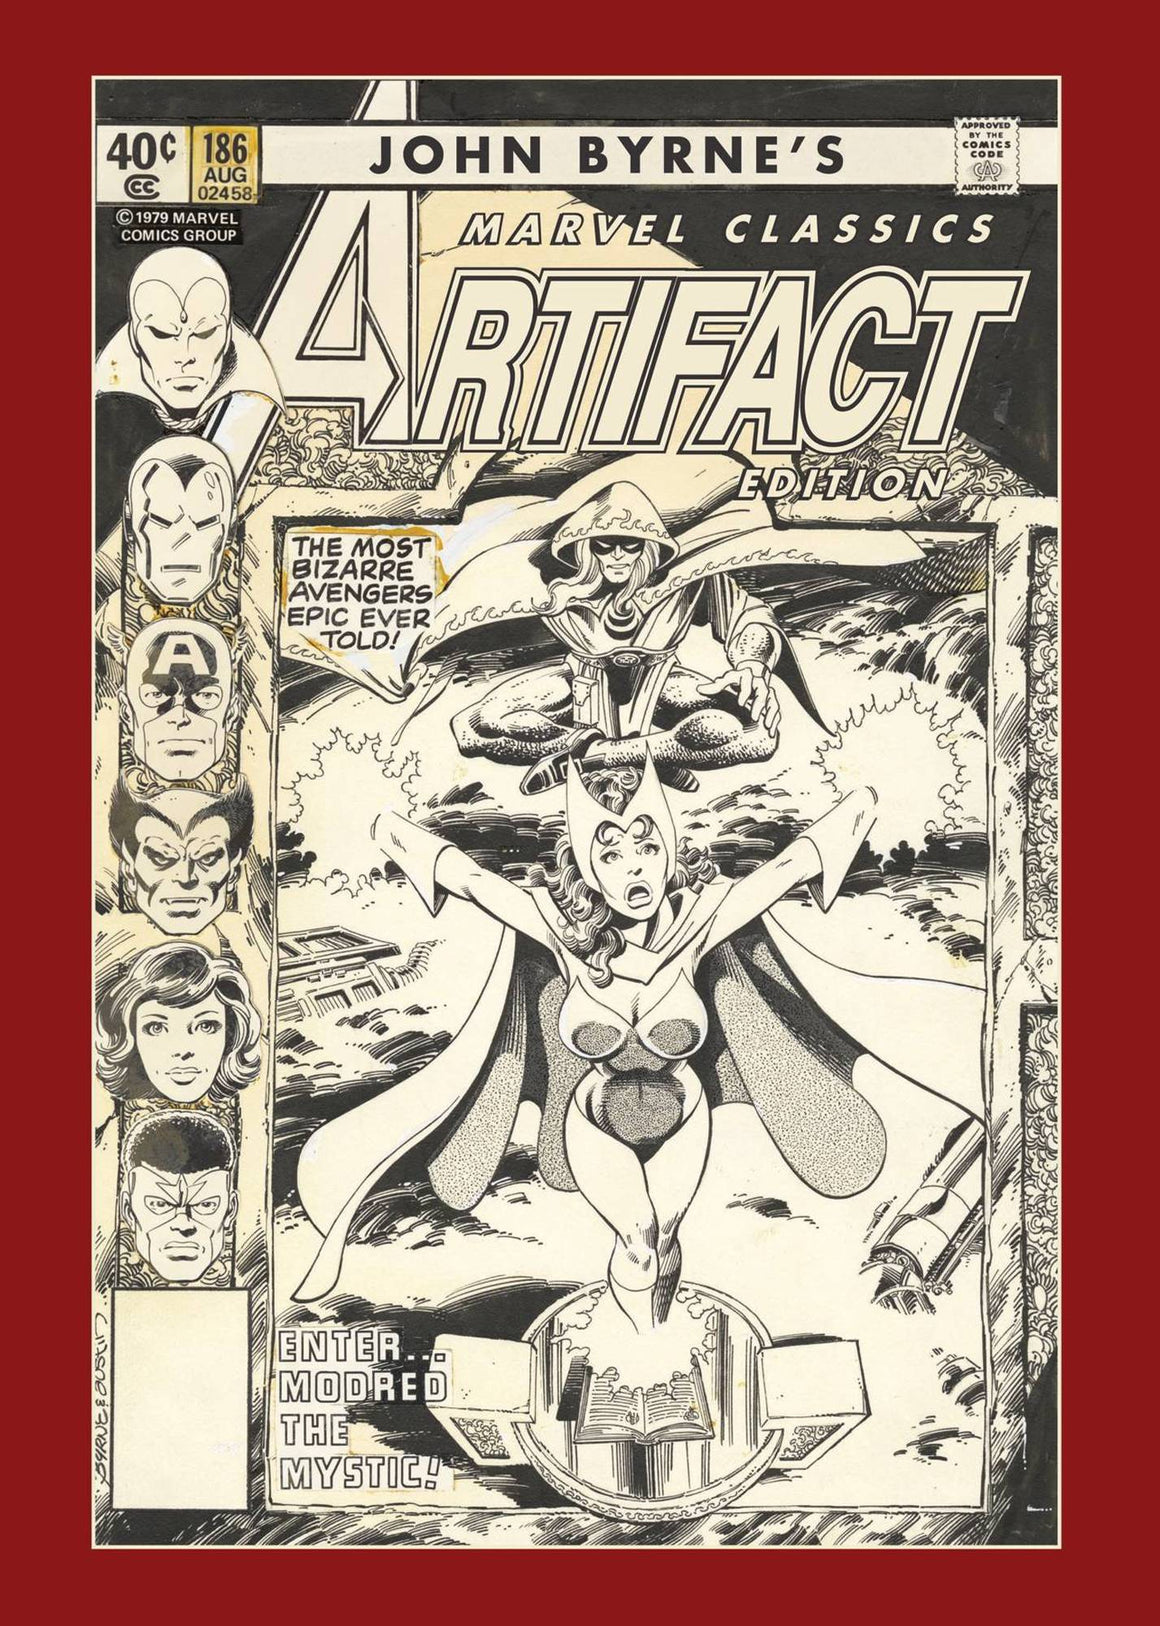 John Byrnes Marvel Classic Artifact Edition